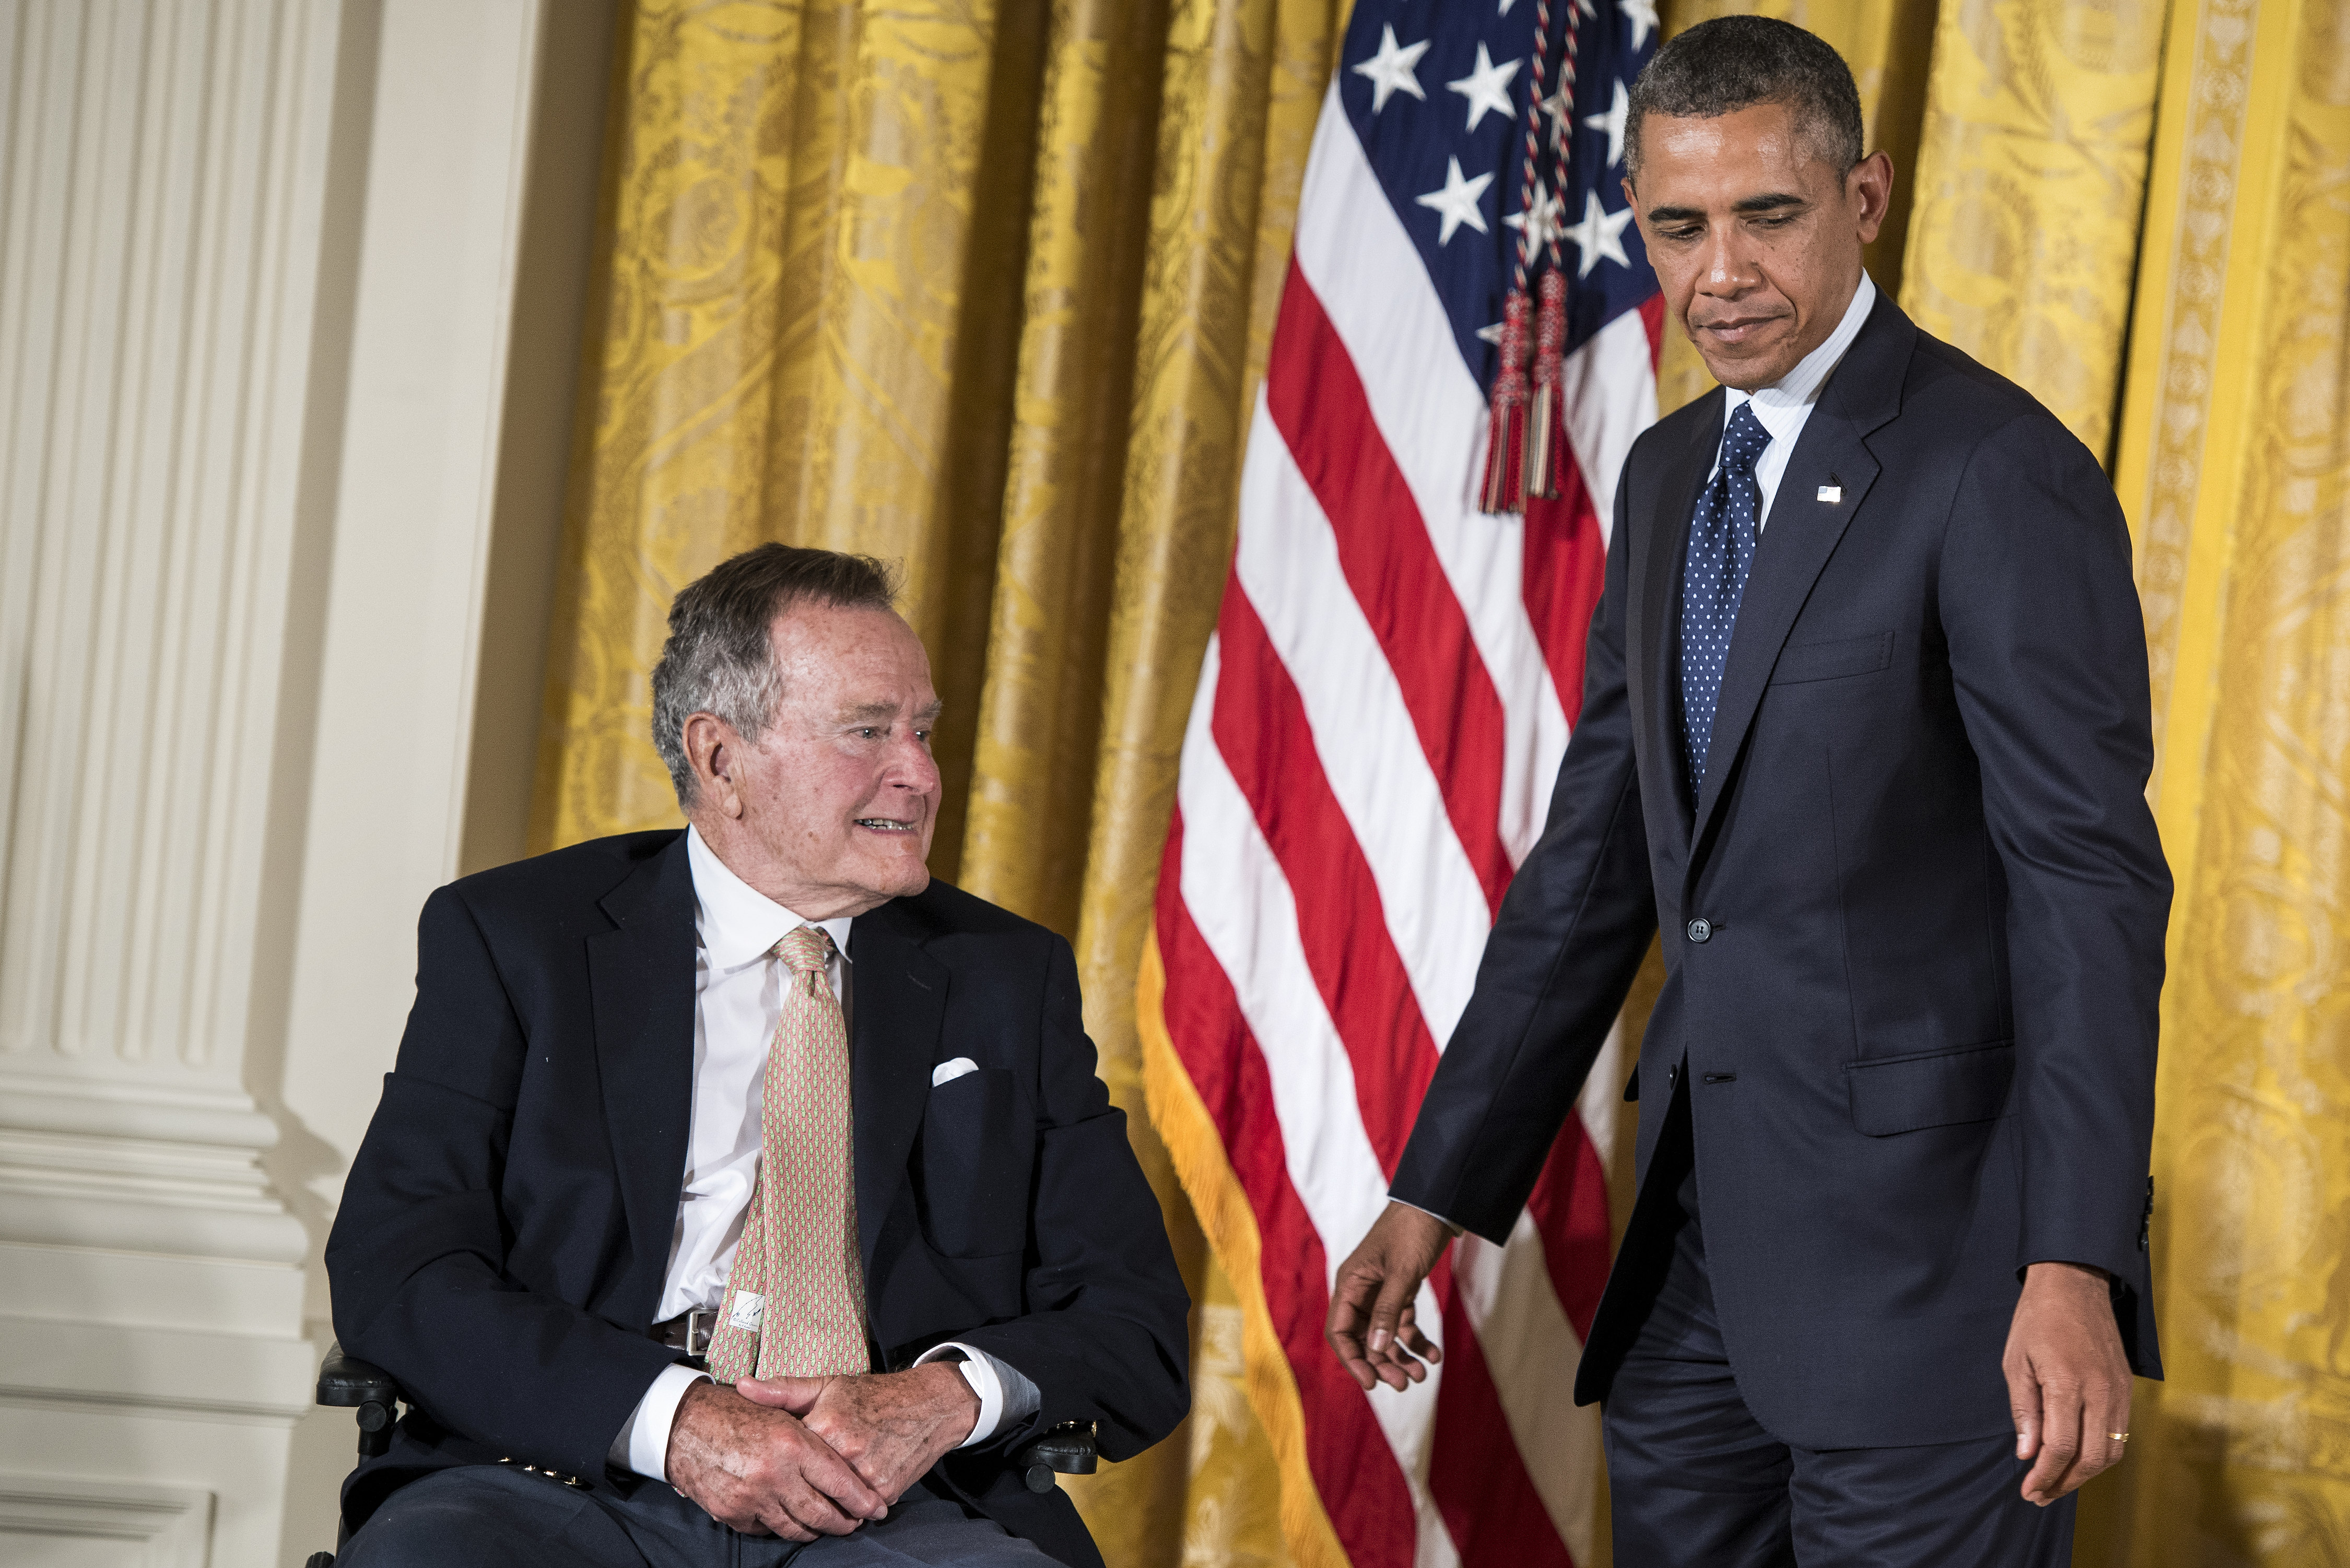 Ggeorge Bush padre junto a Barcack Obama. AFP/END